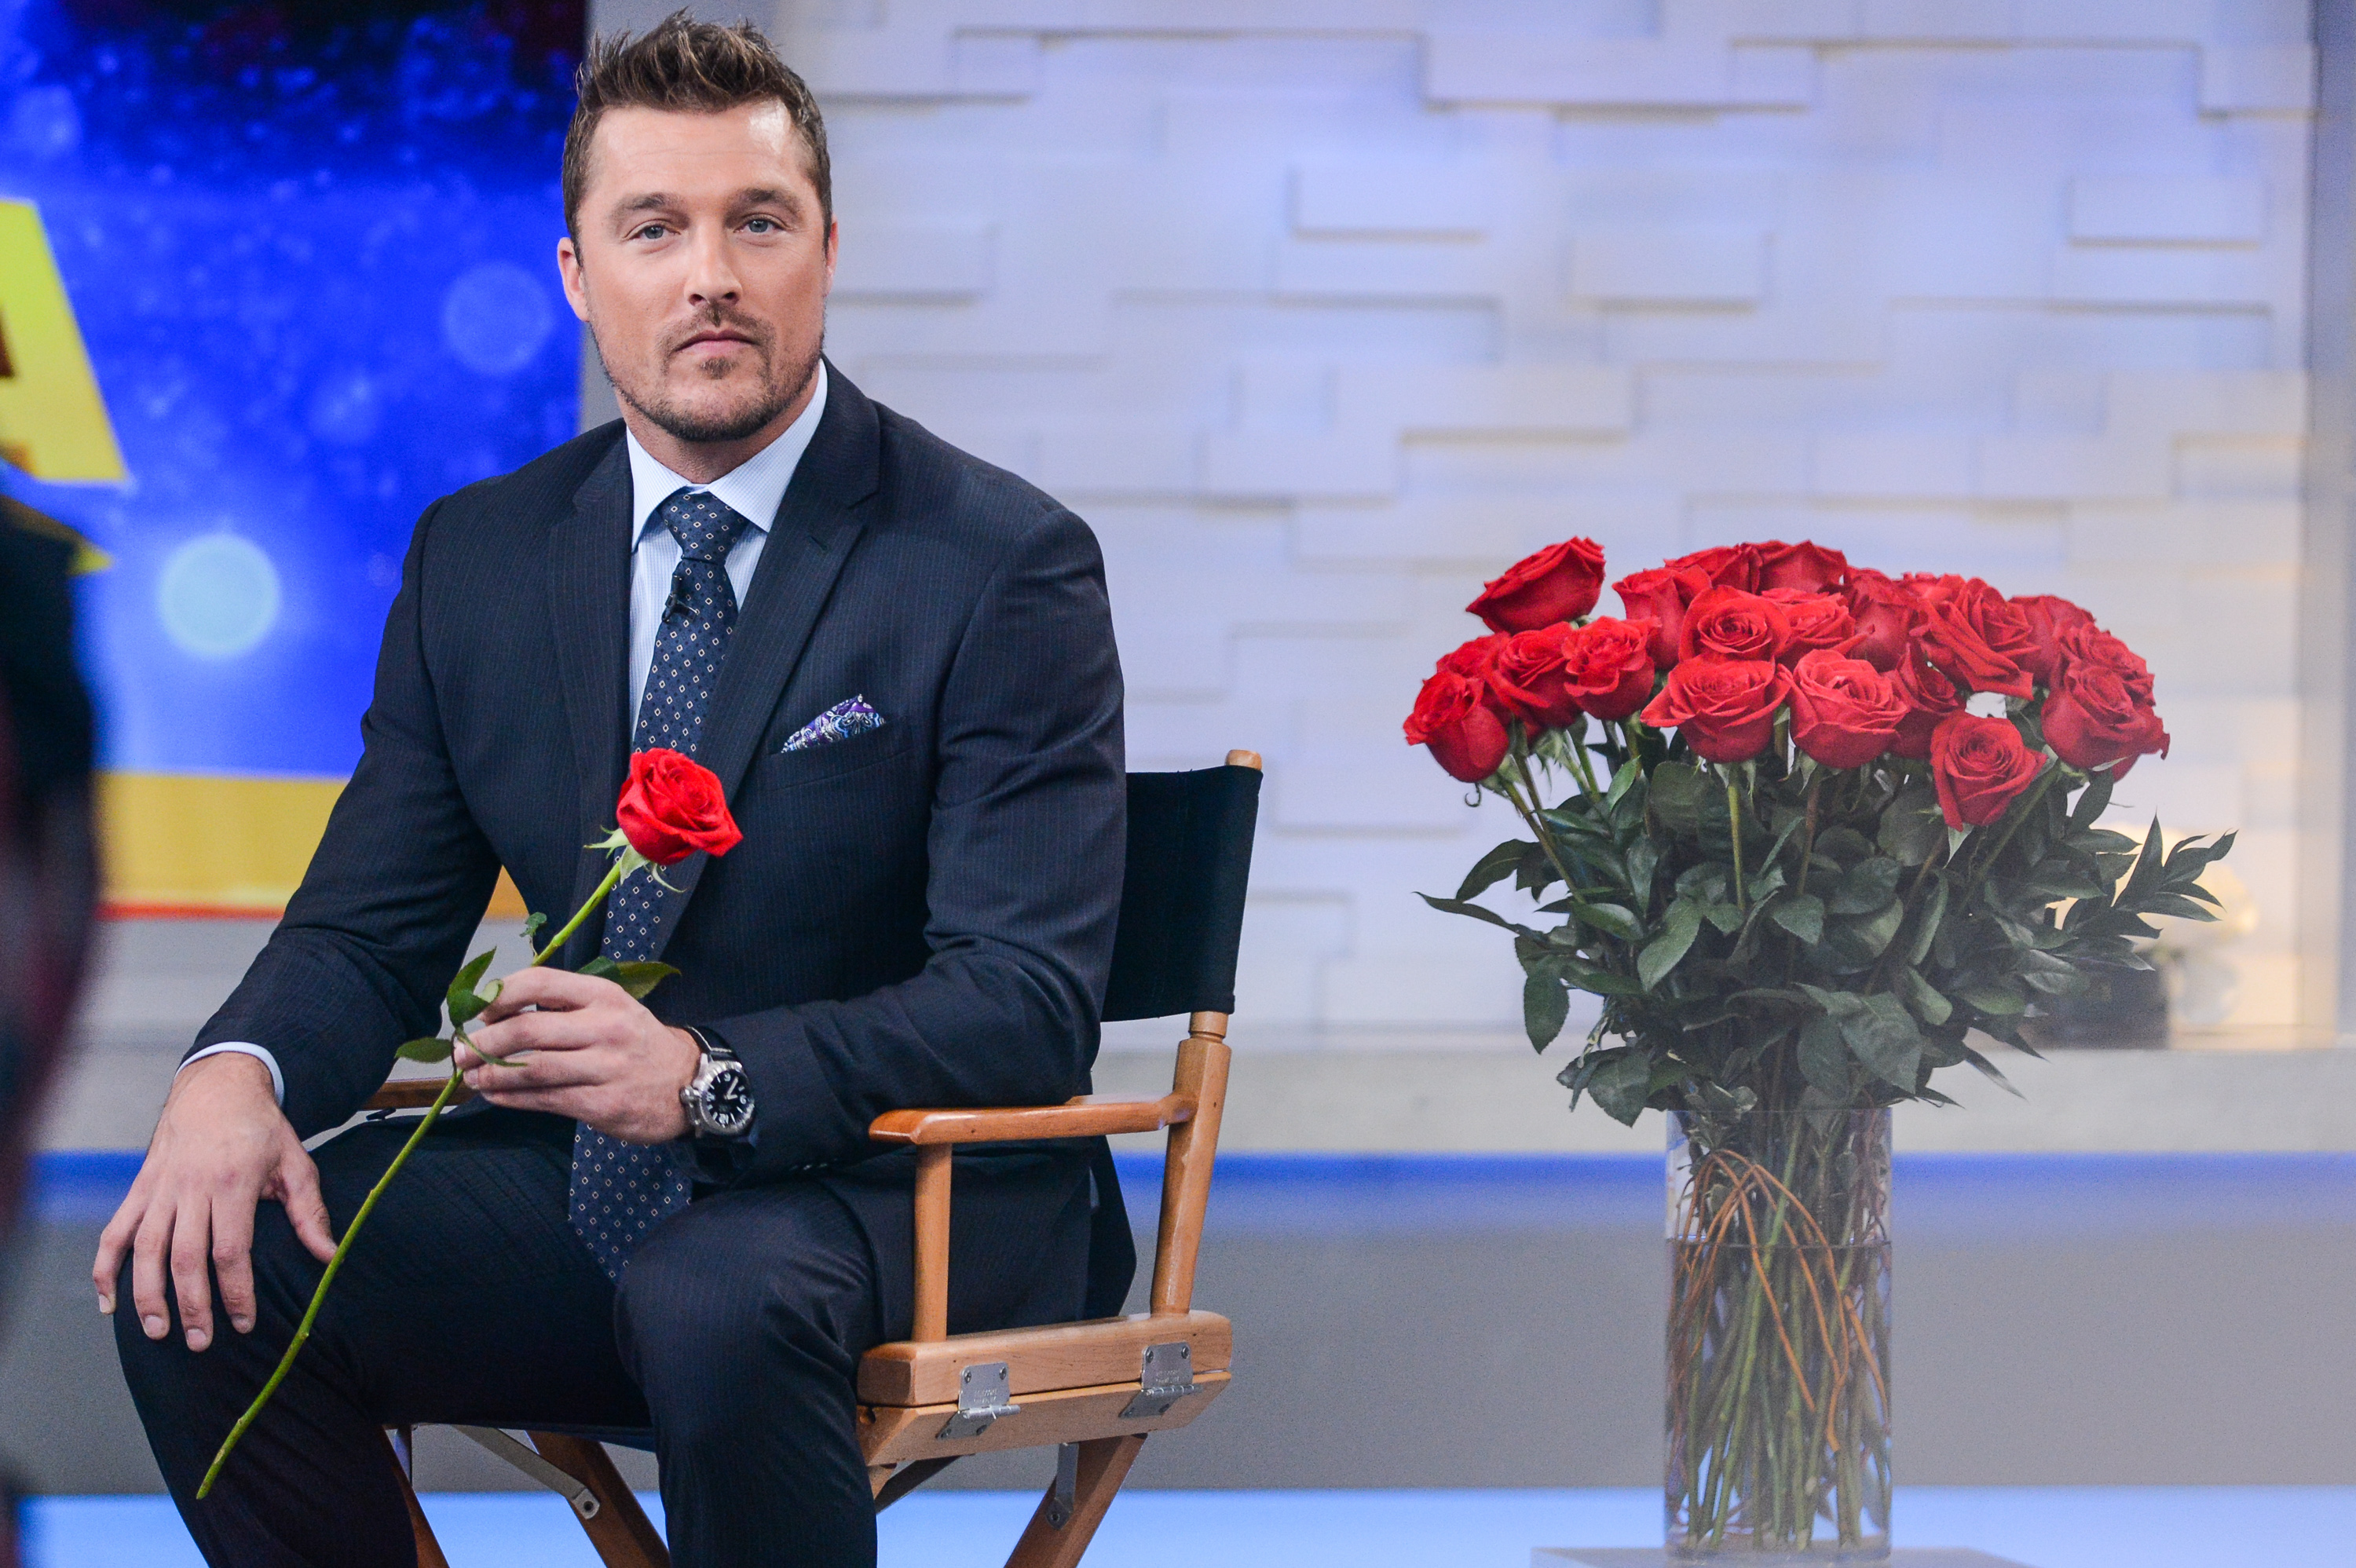 Television personality Chris Soules tapes an interview at Good Morning America at the ABC Times Square Studios in New York City on Jan. 5, 2015